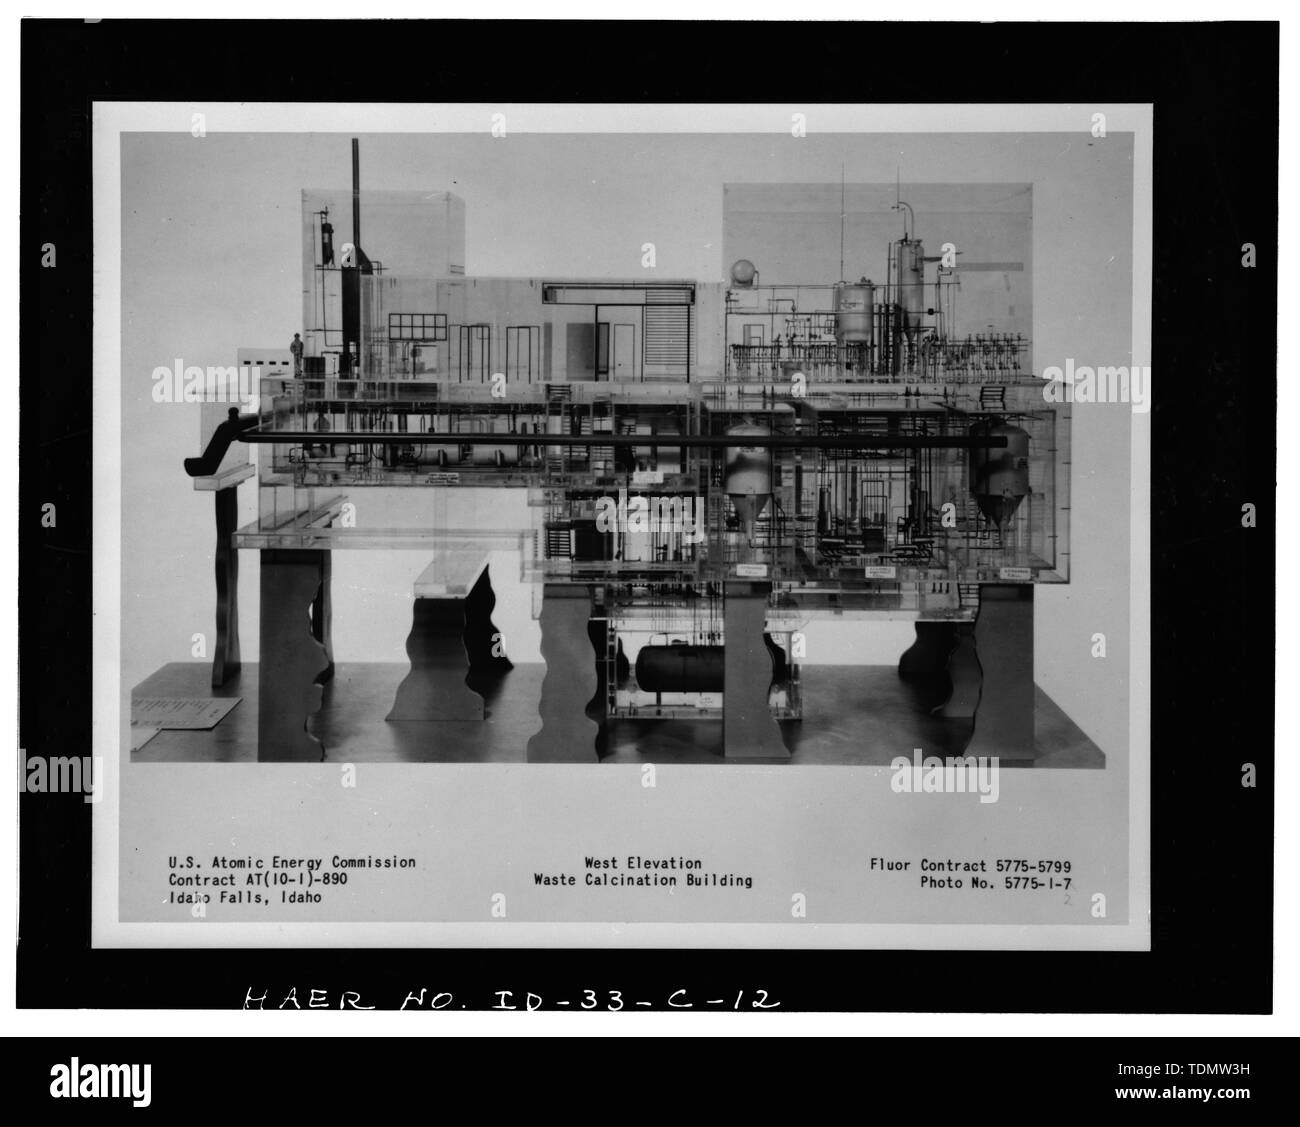 PHOTOGRAPH OF A PHOTOGRAPH OF A SCALE MODEL OF THE WASTE CALCINER FACILITY, SHOWING WEST ELEVATION. (THE ORIGINAL MODEL HAS BEEN LOST.) INEEL PHOTO NUMBER 95-903-1-3. - Idaho National Engineering Laboratory, Old Waste Calcining Facility, Scoville, Butte County, ID - Stock Image